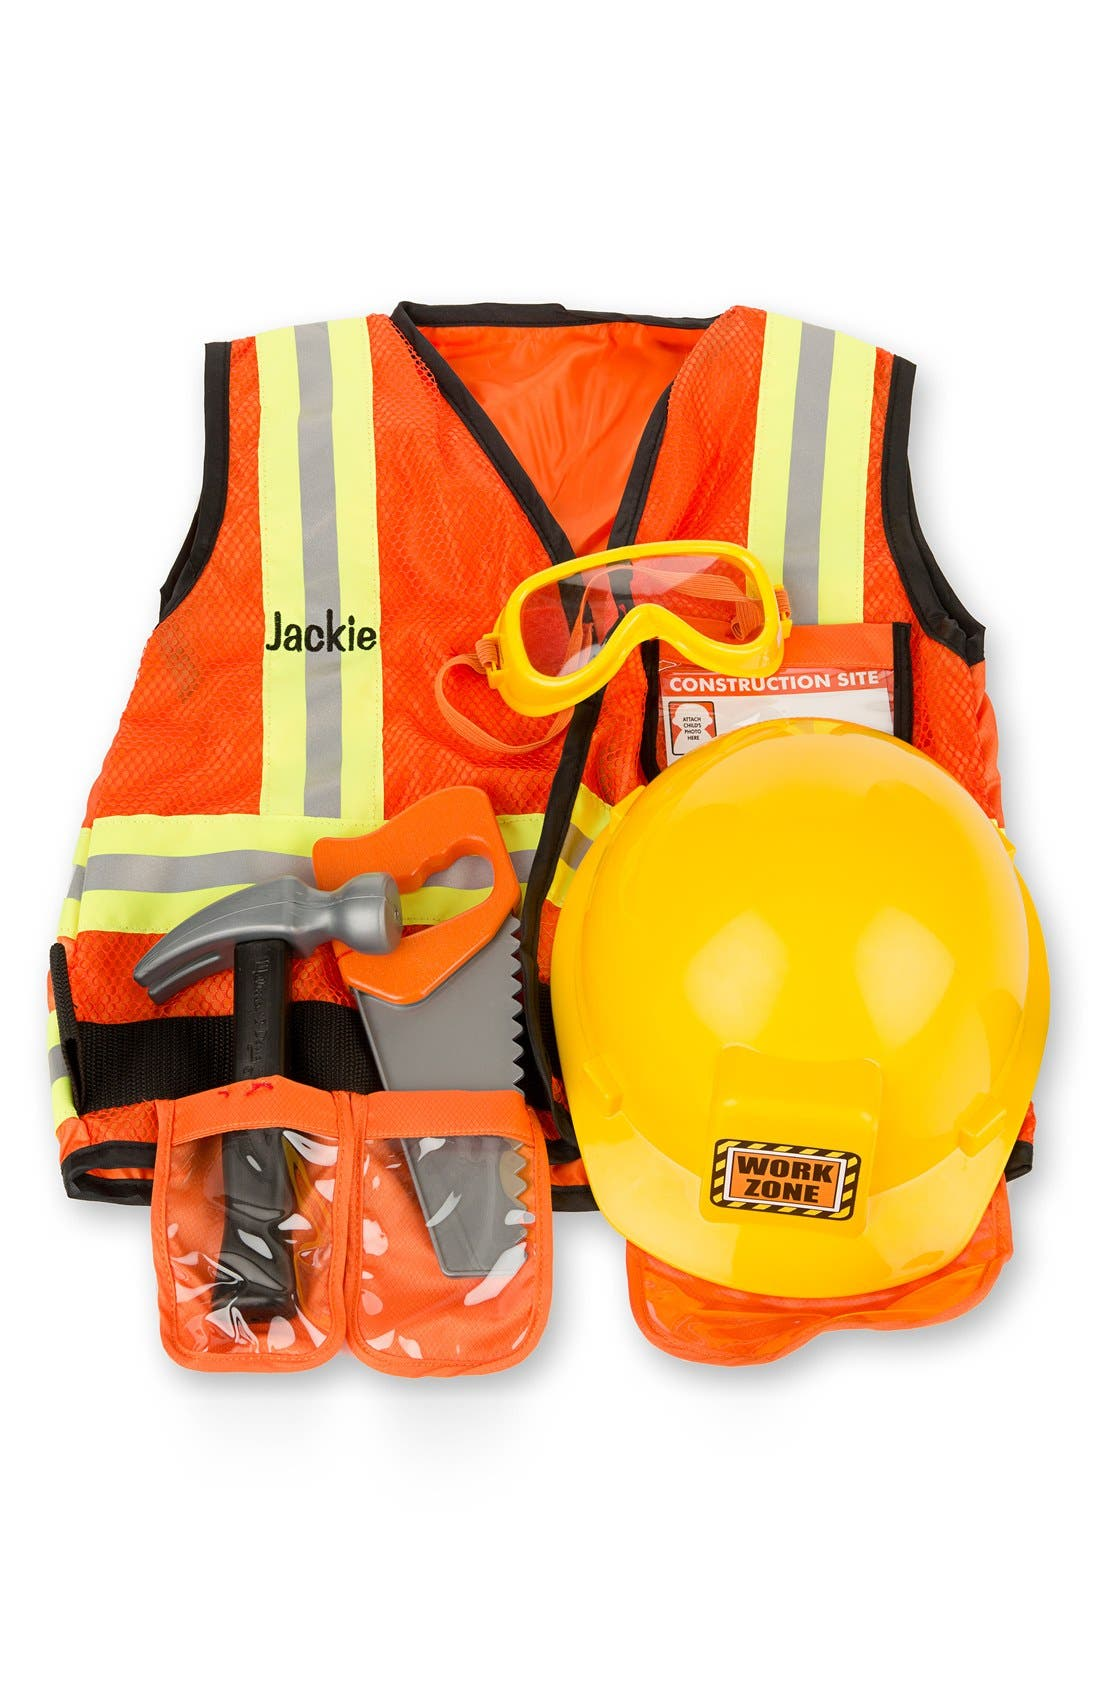 'Construction Worker' Personalized Costume Set,                         Main,                         color, 800